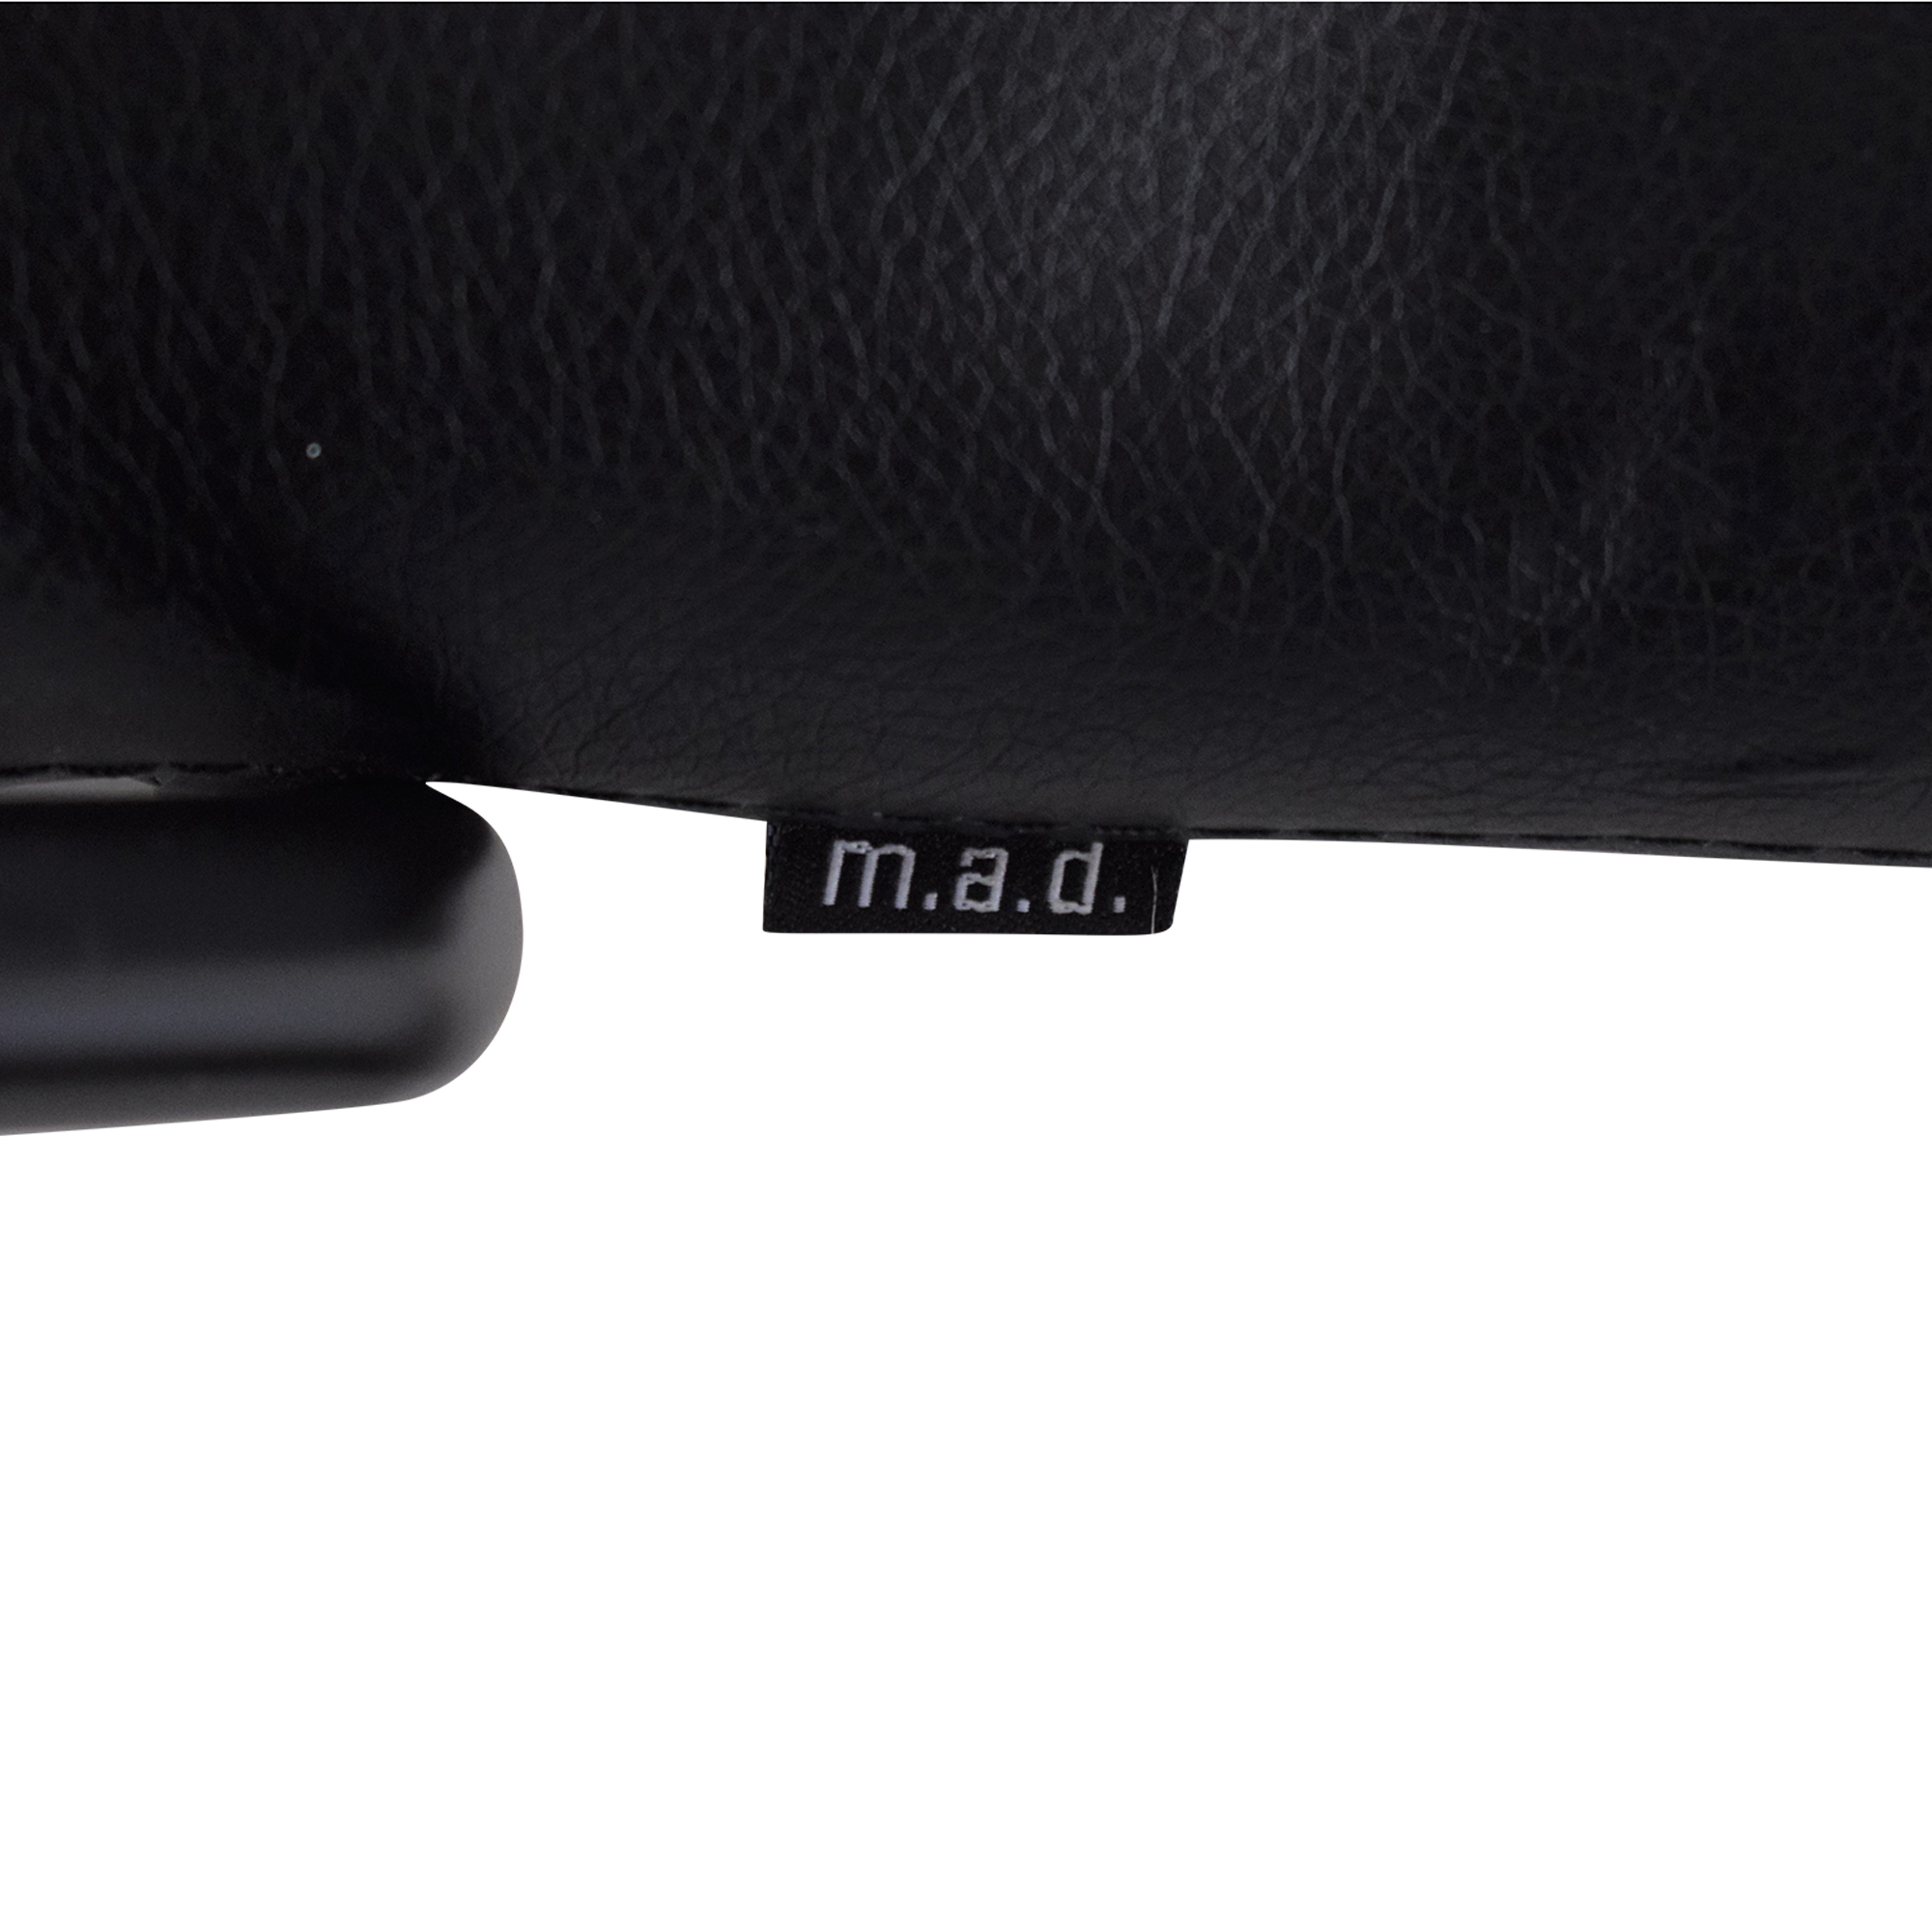 m.a.d. m.a.d. Sling Upholstered Leather Chairs for sale